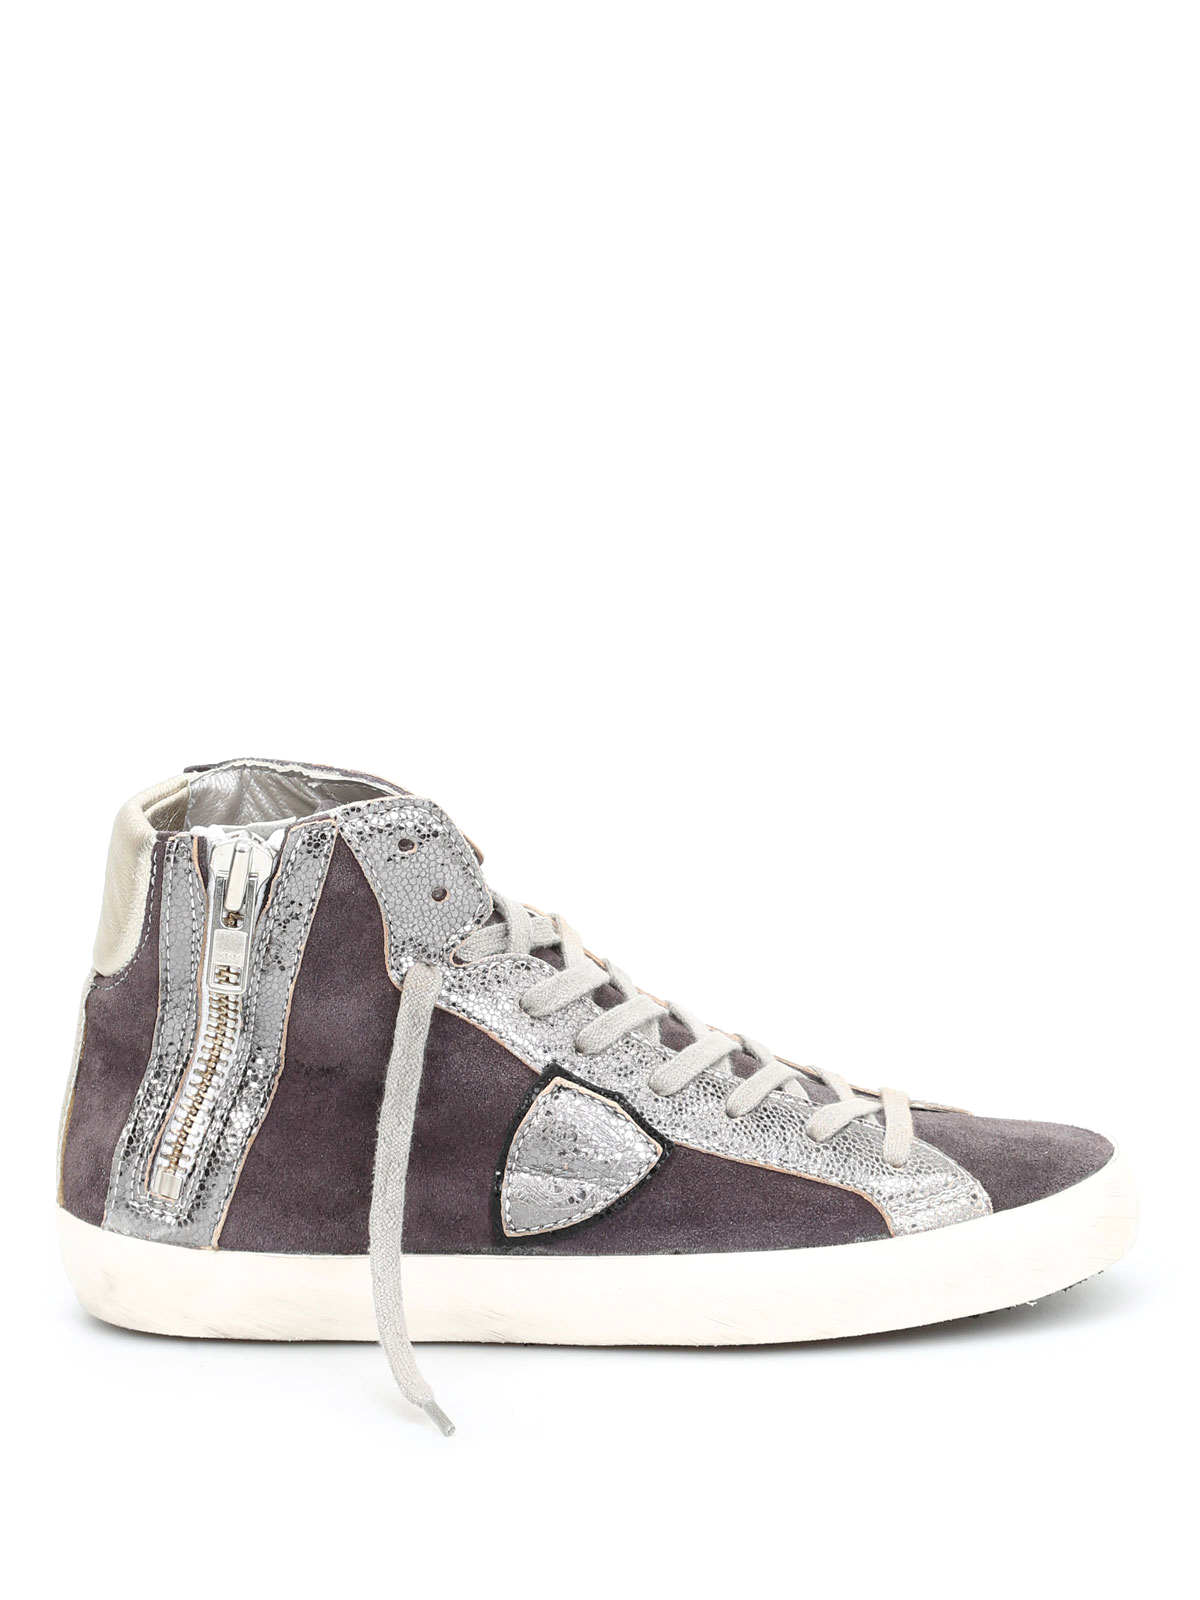 suede high top sneakers by philippe model trainers ikrix. Black Bedroom Furniture Sets. Home Design Ideas